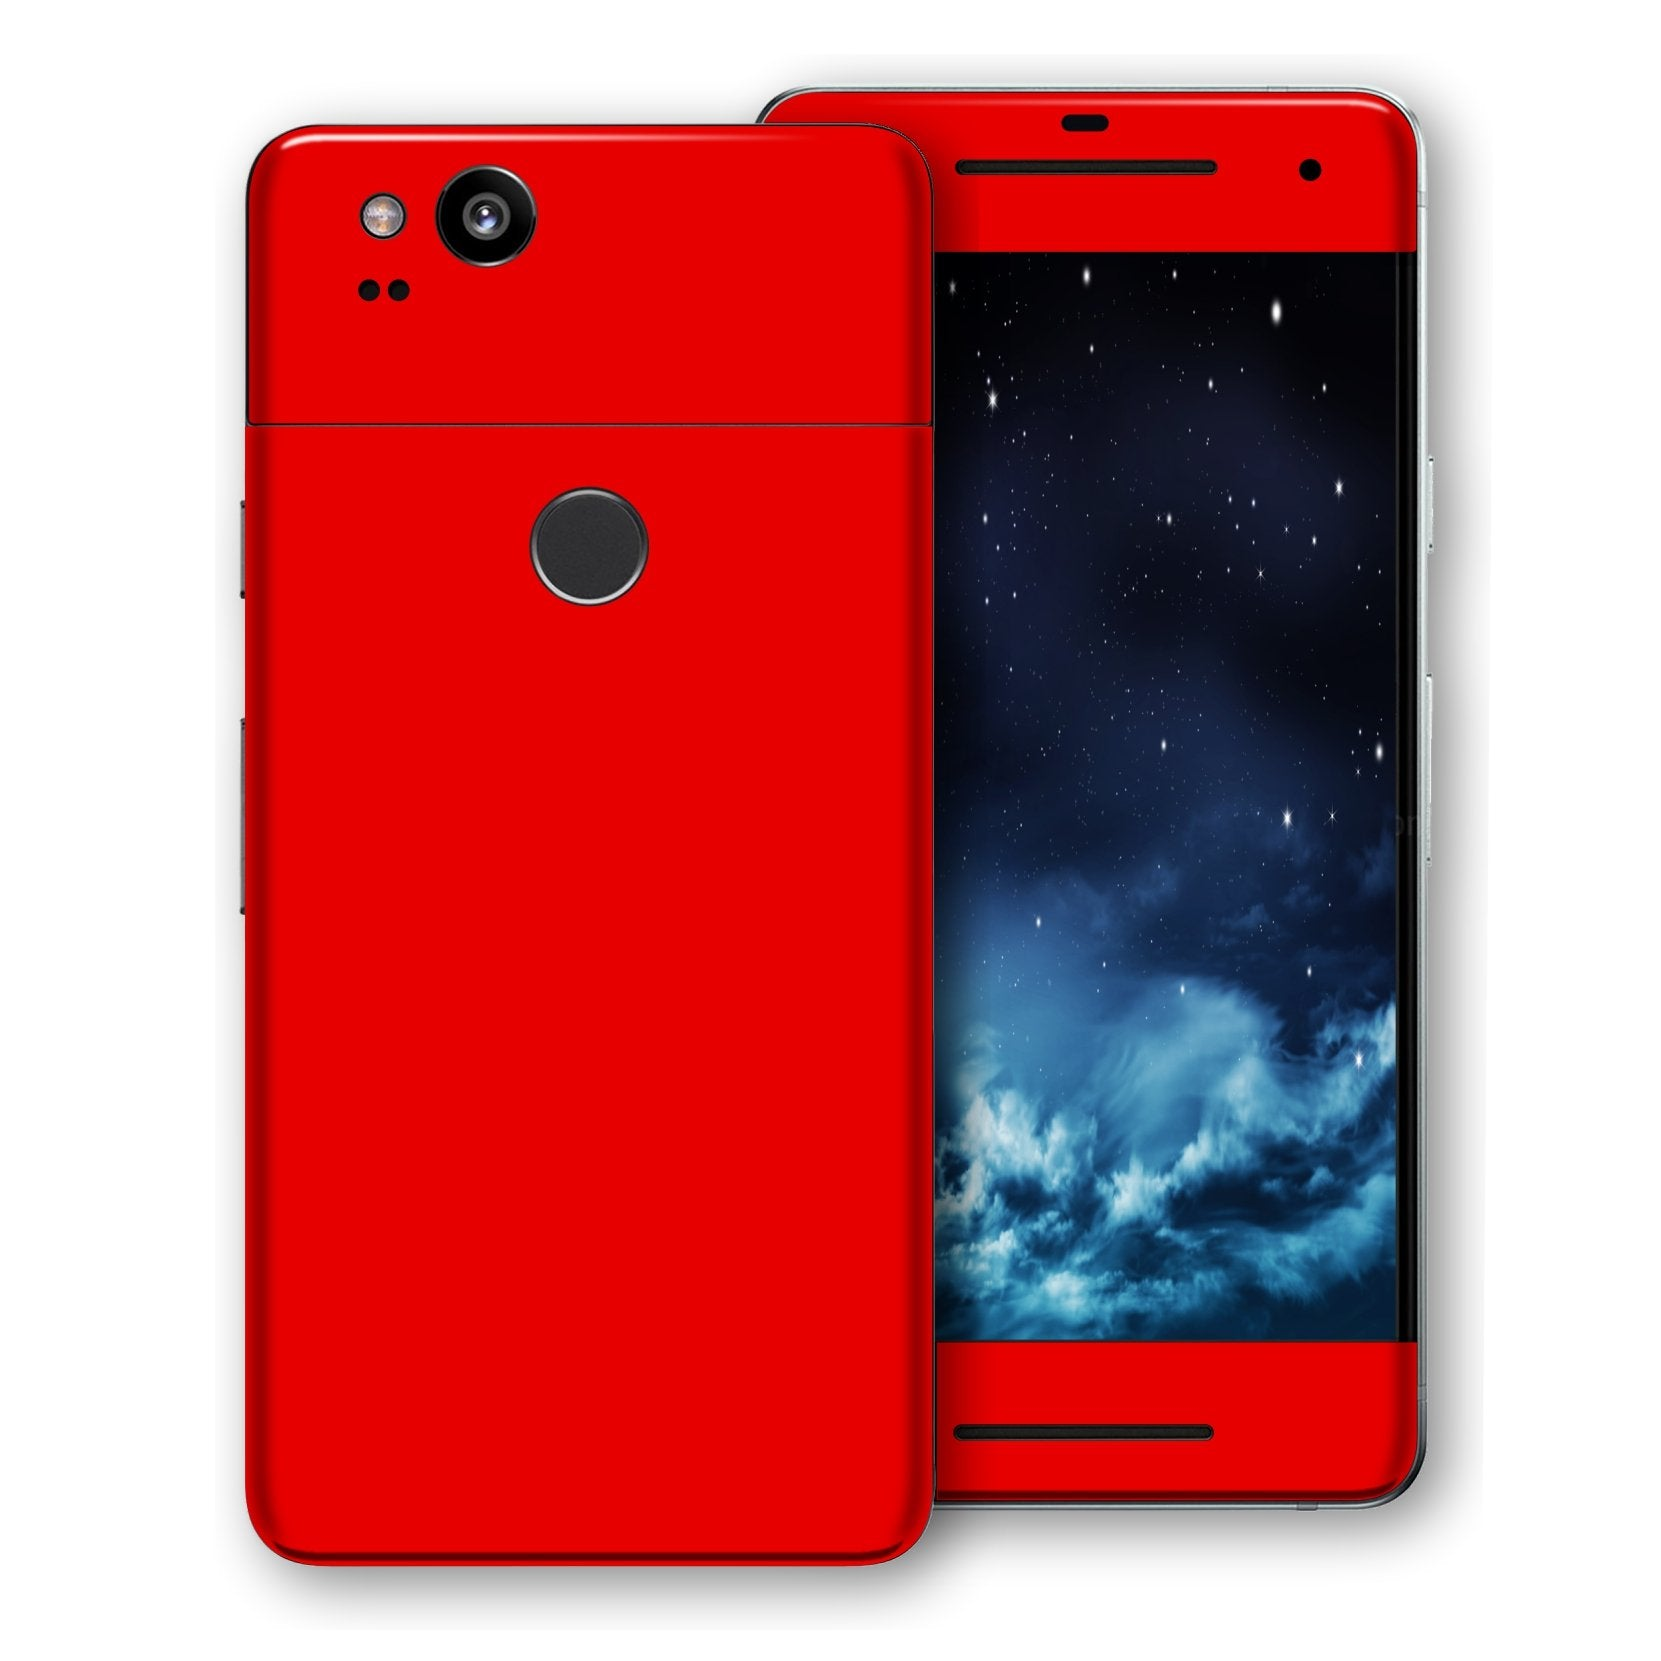 Google Pixel 2 XL Bright Red Glossy Gloss Finish Skin, Decal, Wrap, Protector, Cover by EasySkinz | EasySkinz.com